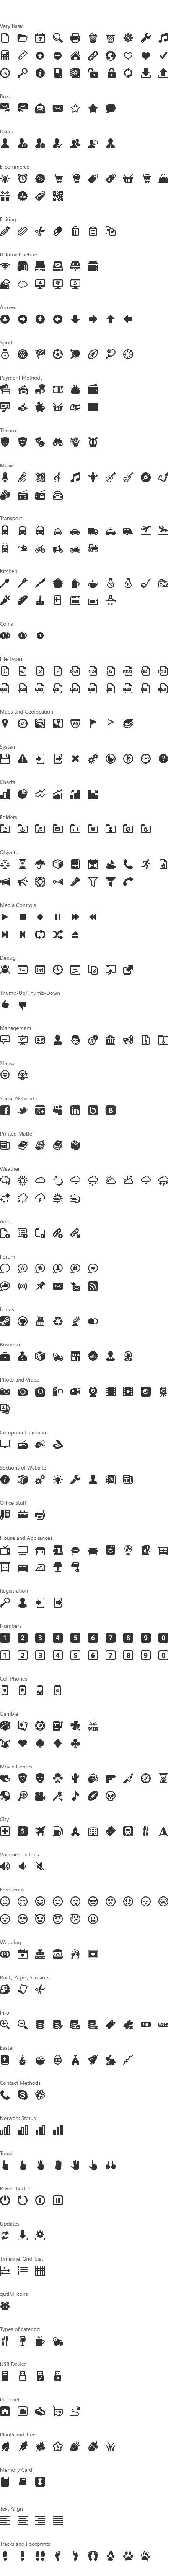 Icons every designer should know.    Free Download : 529 Icon Windows 8 Metro Style Pack